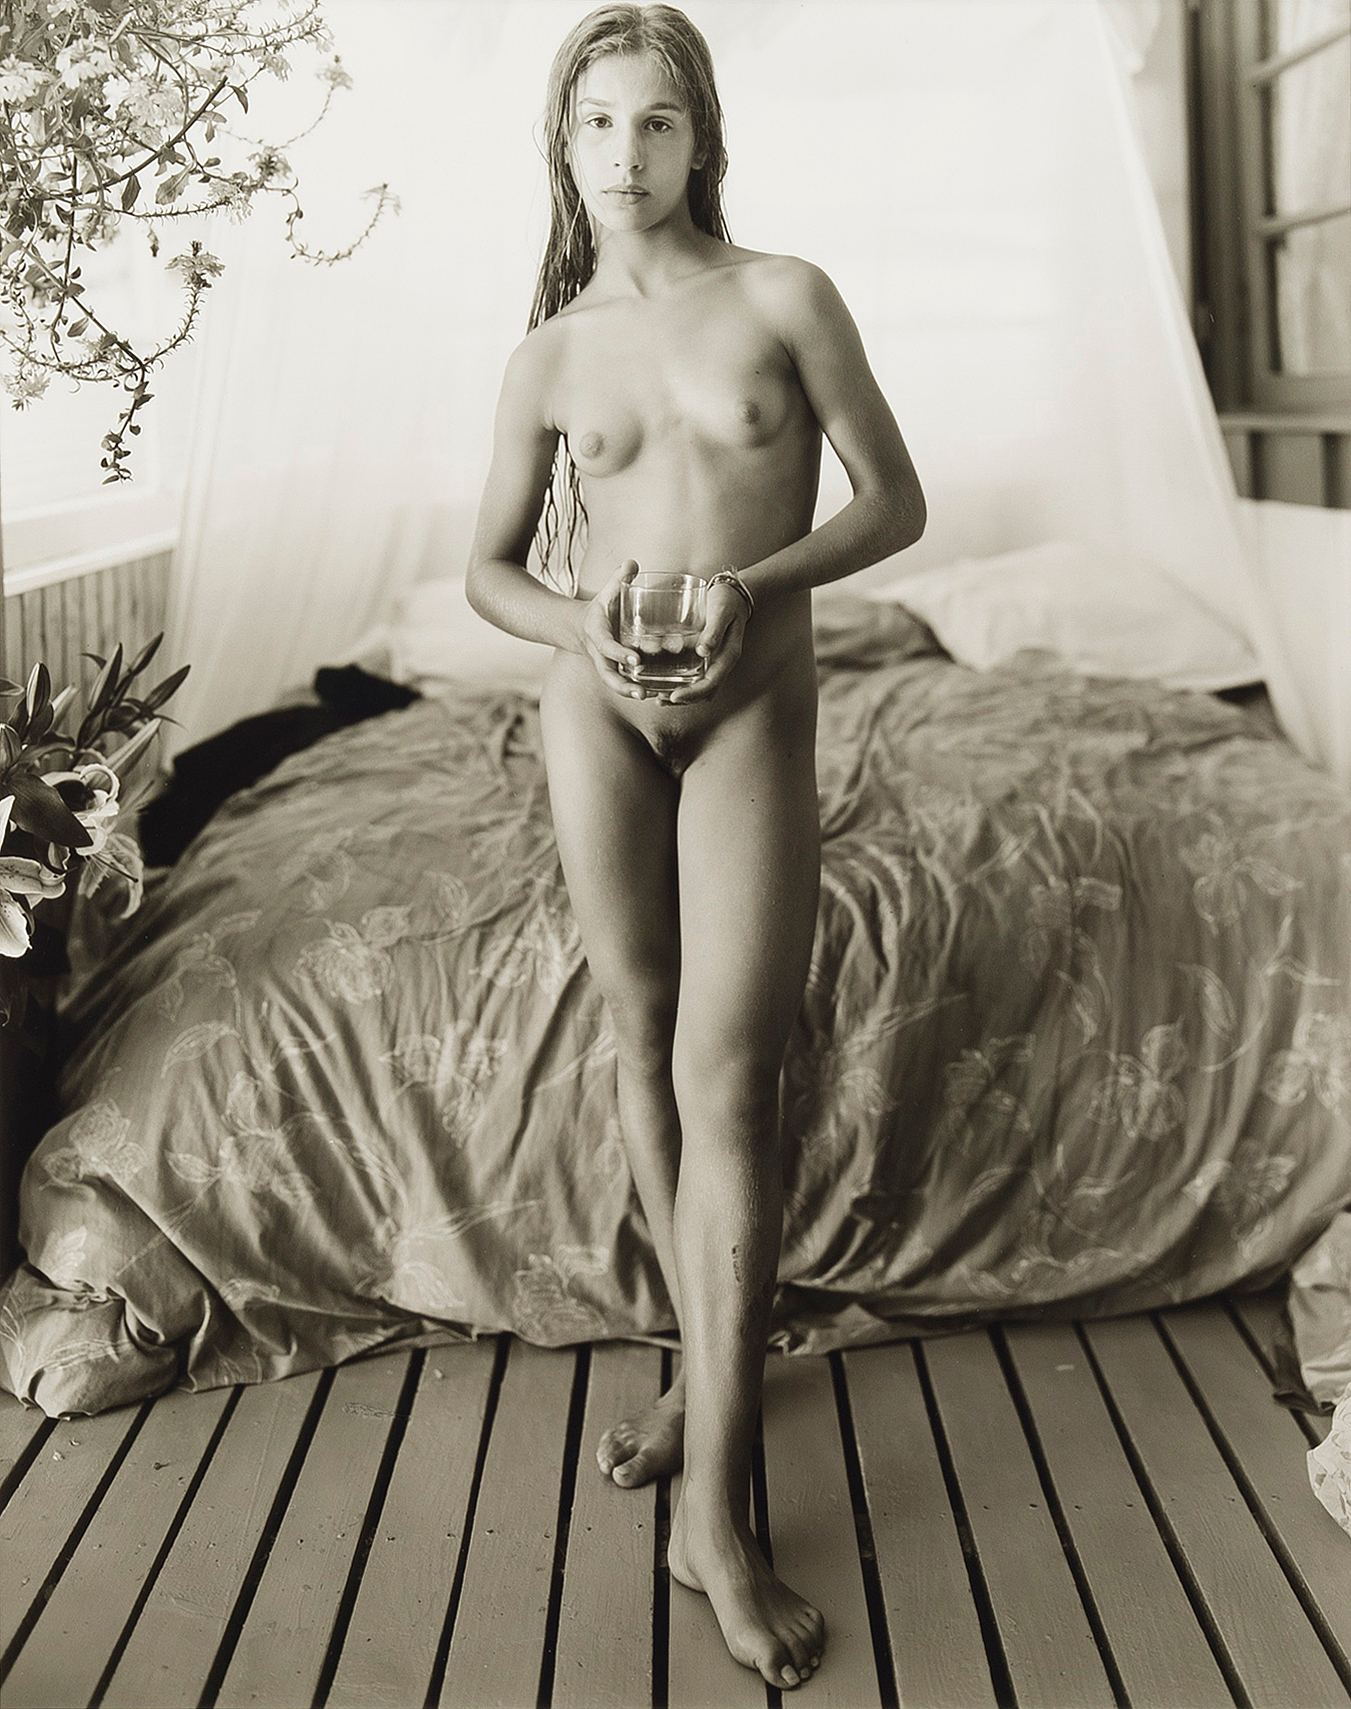 Something is. Young jock sturges photo controversial girls congratulate, what